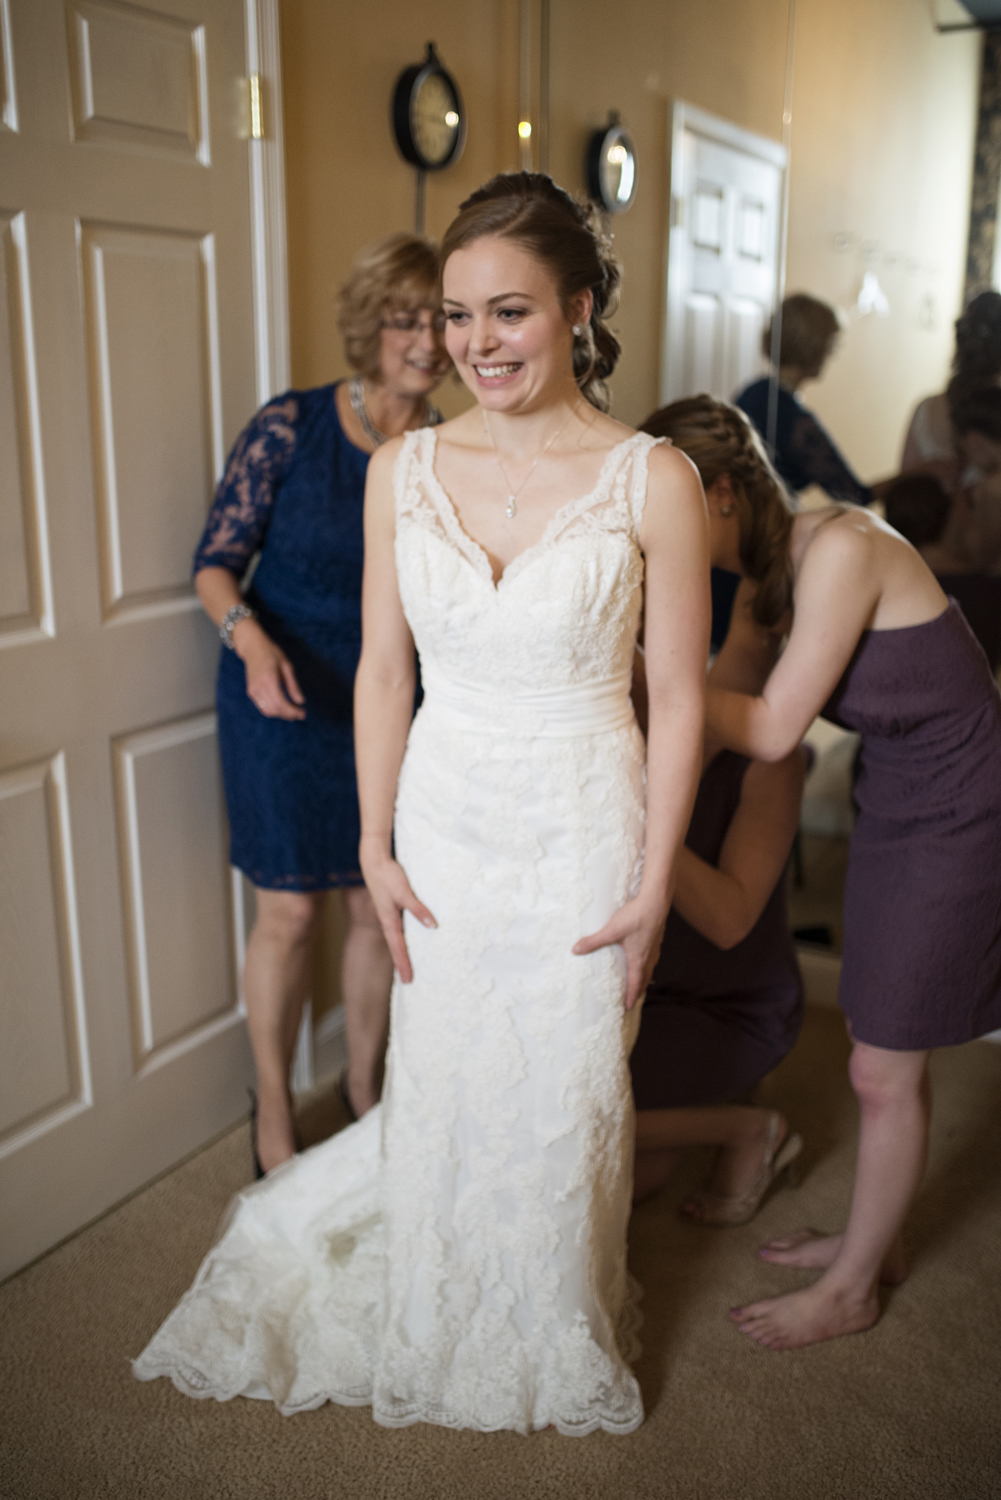 Bridesmaids in lavender dresses helping bride in lace wedding dress get ready